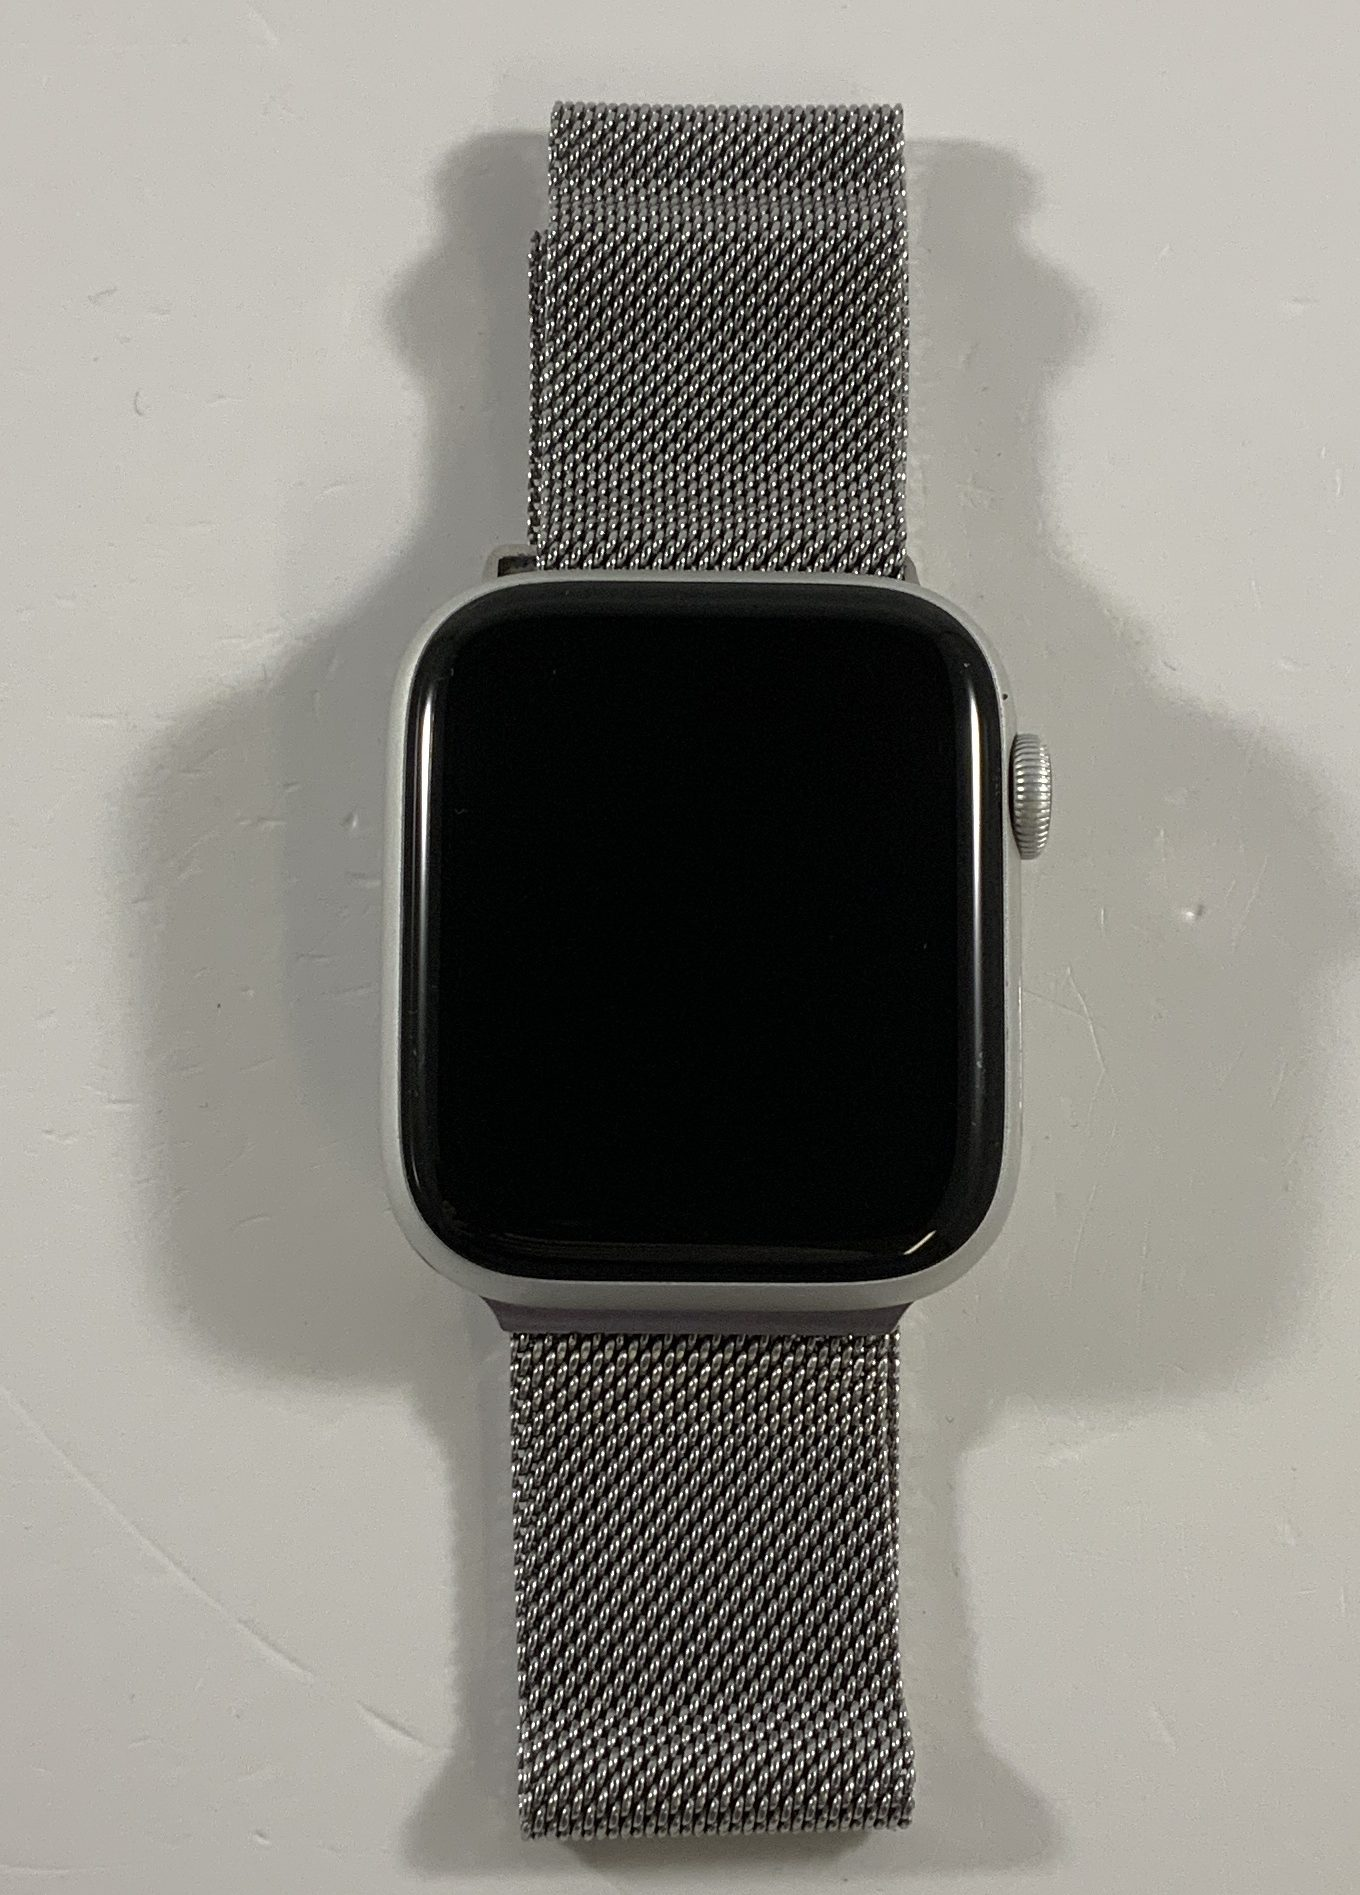 Watch Series 5 Aluminum (44mm), Silver, image 4